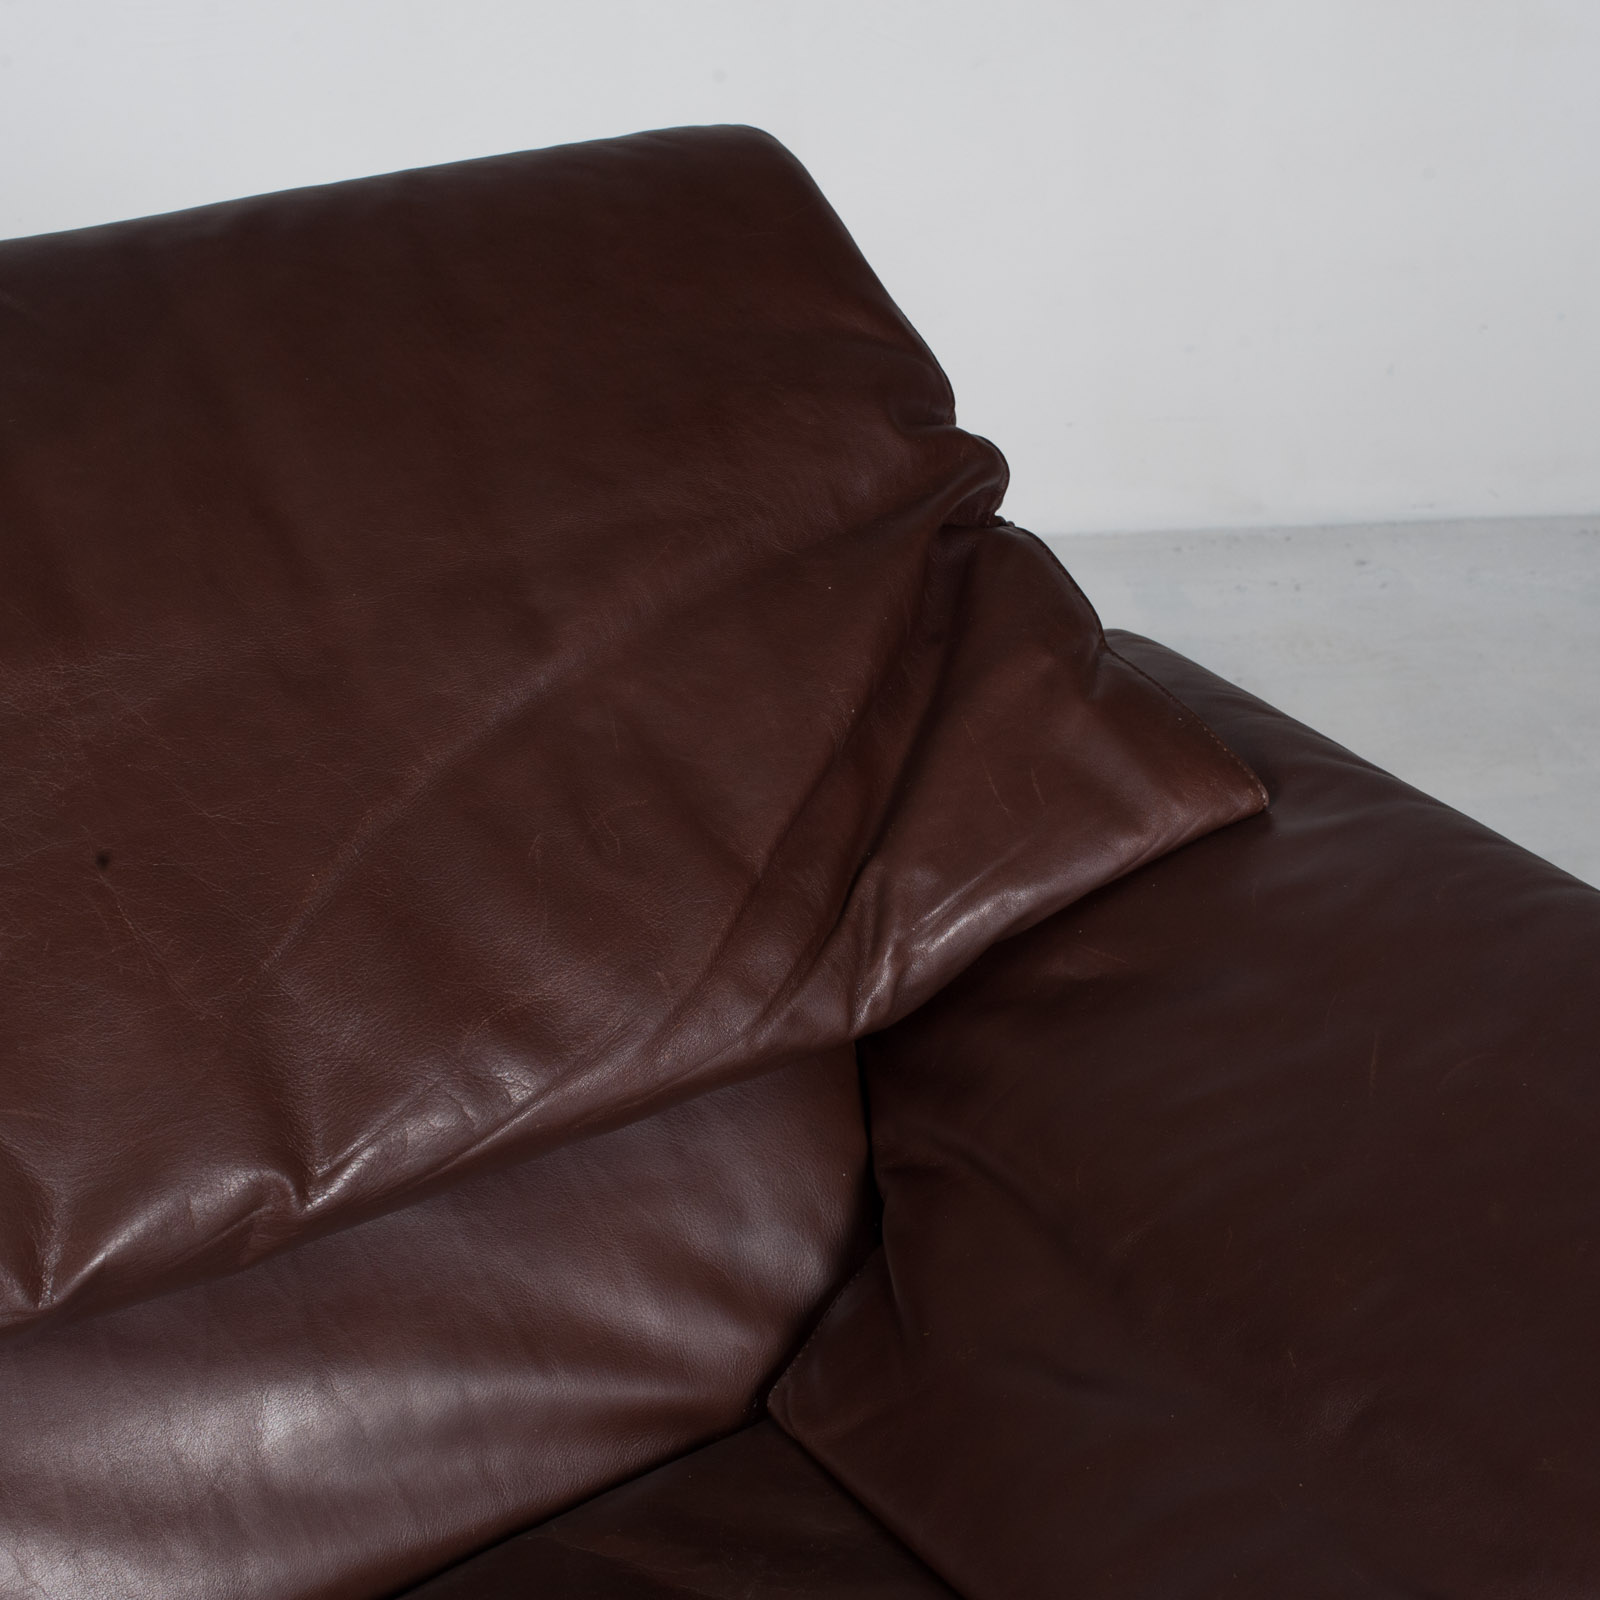 Alanda Sofa By Paolo Piva For B&b Italia In Burgundy Leather 1980s Italy 12